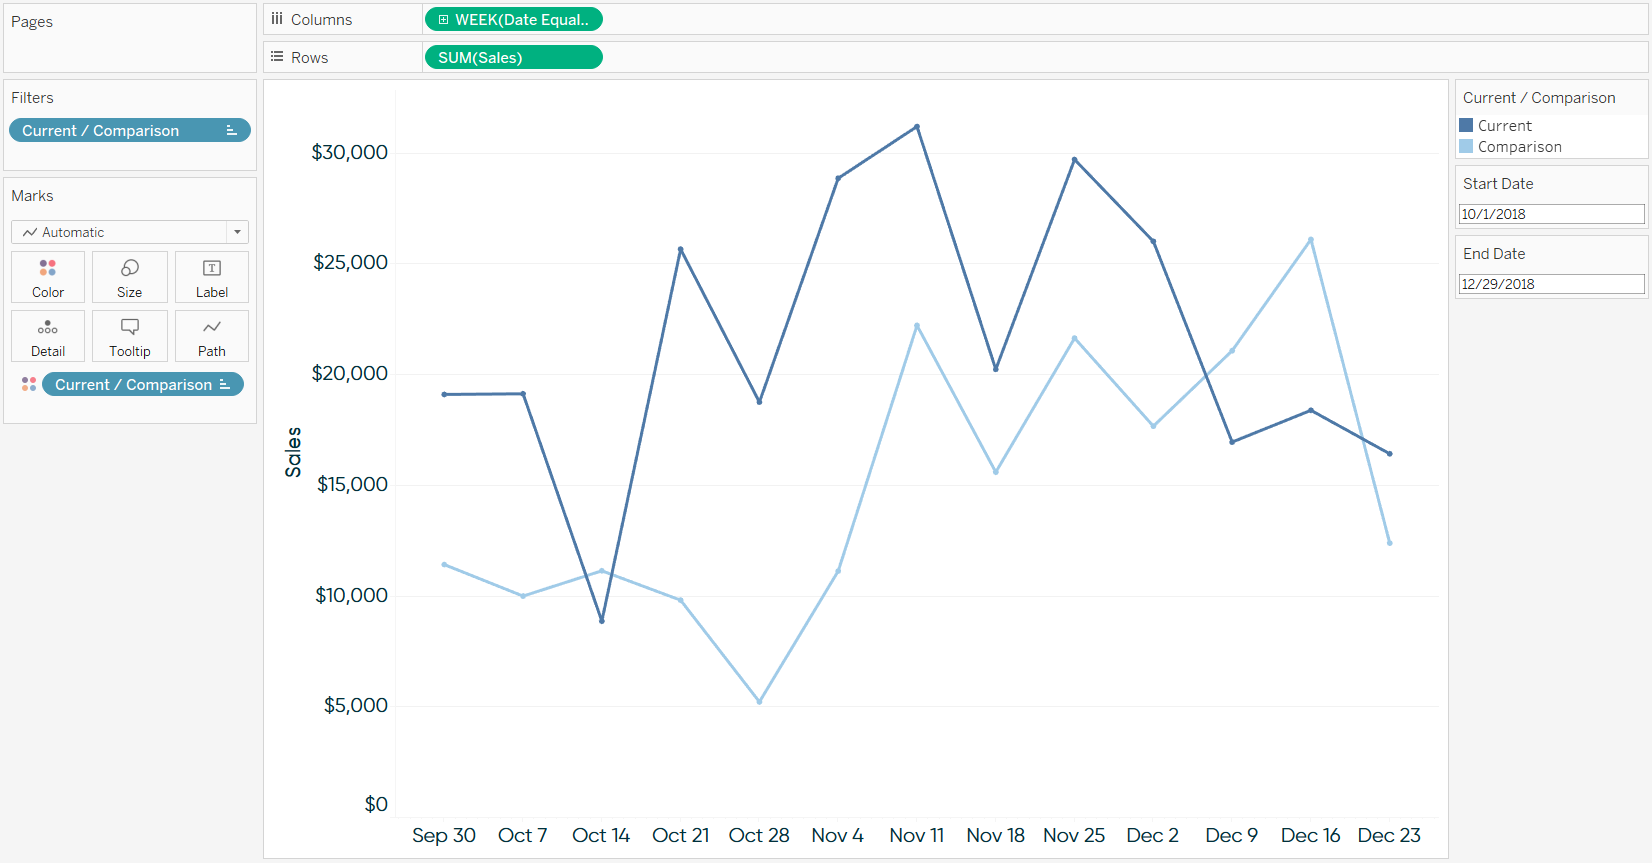 Quarter over Quarter Analysis in Tableau with Equalized Date Ranges